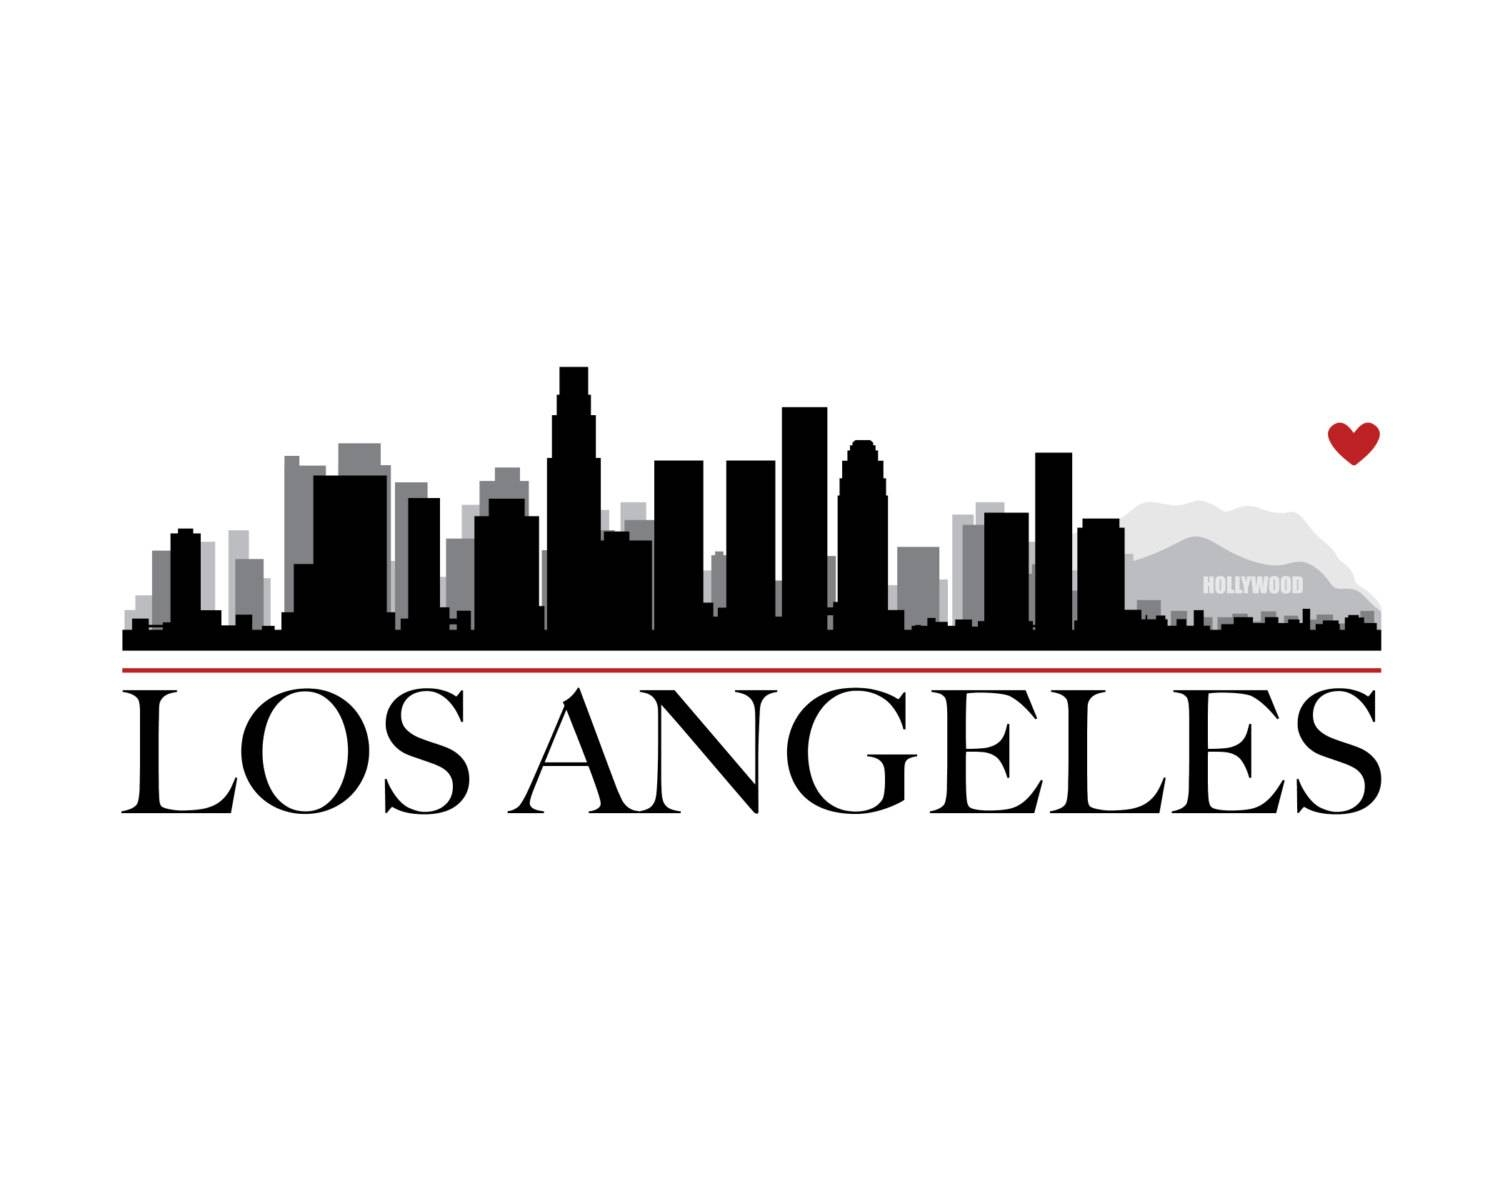 Los Angeles City Skyline With Heart Diy Printable Wall Art Intended For Newest Los Angeles Wall Art (View 10 of 20)